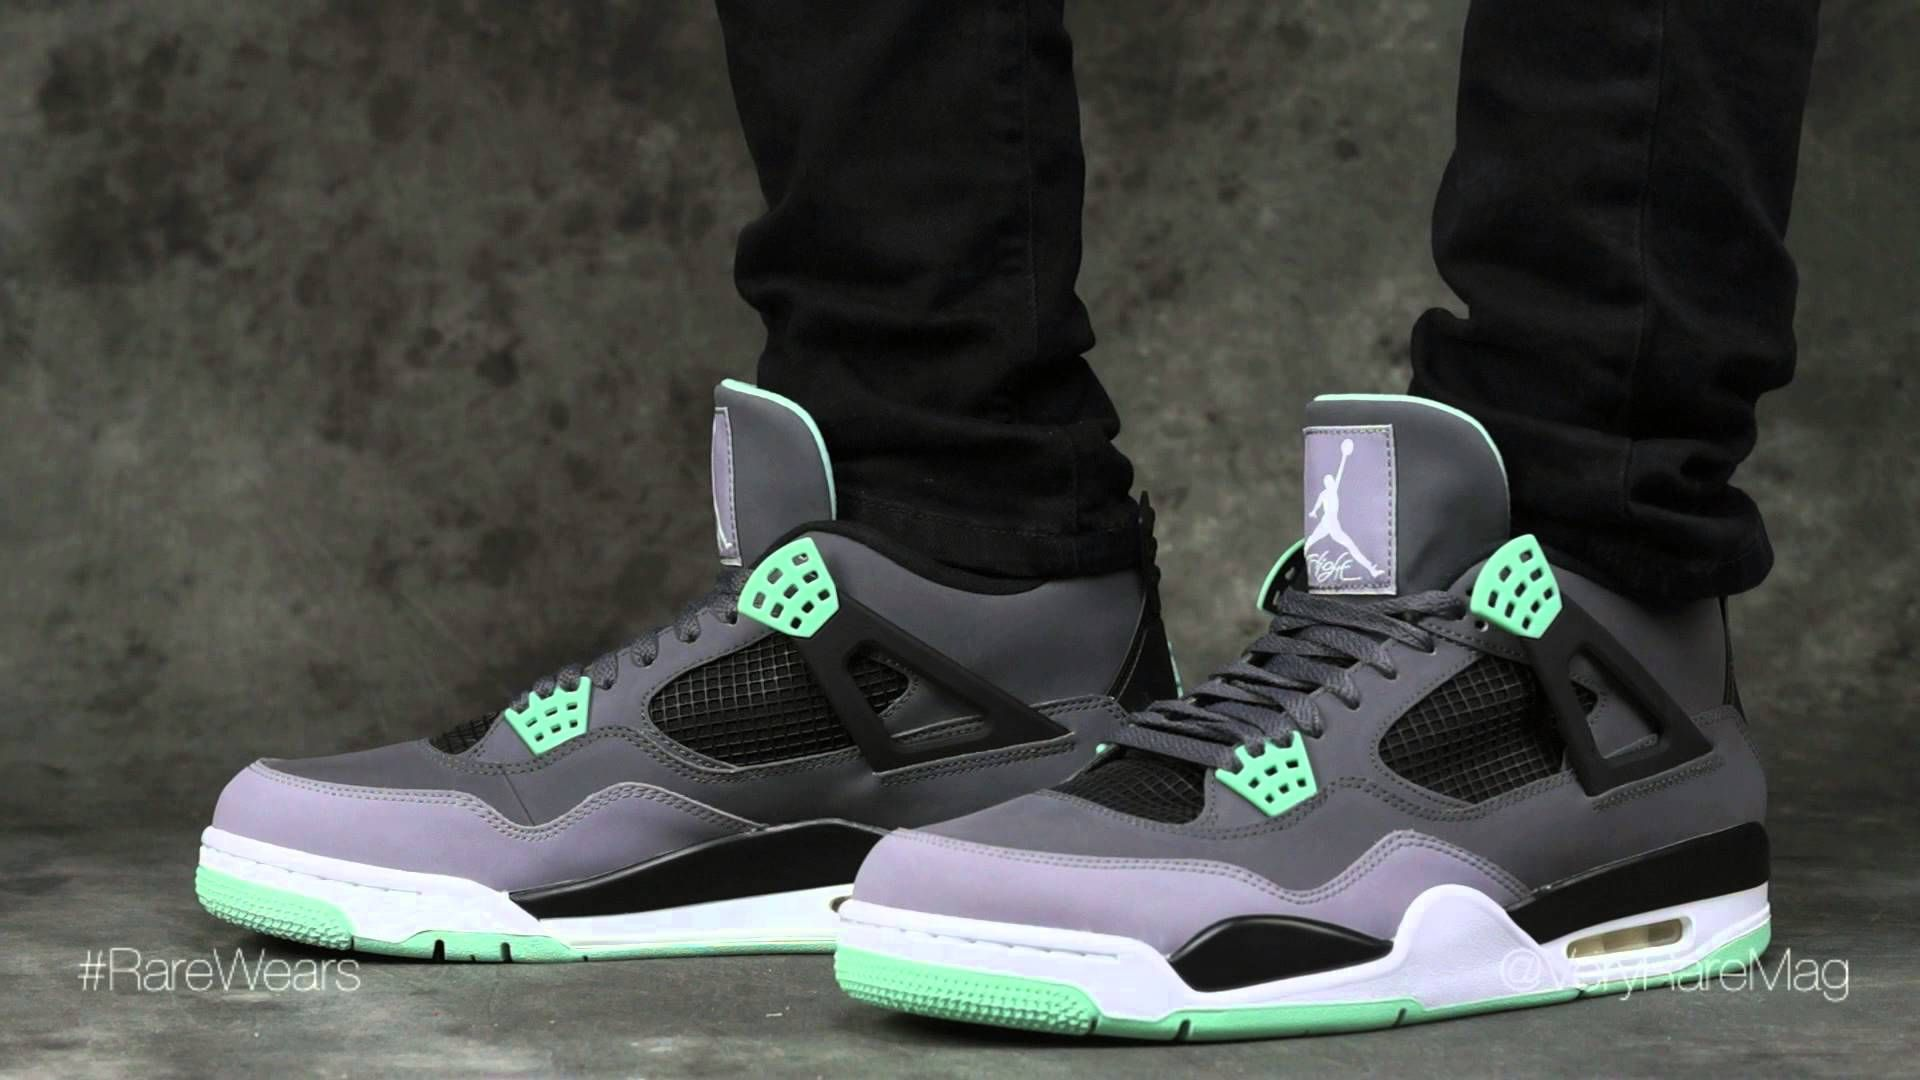 Air Jordan 4 Retro 'Green Glow' on-feet | #RareWears ...